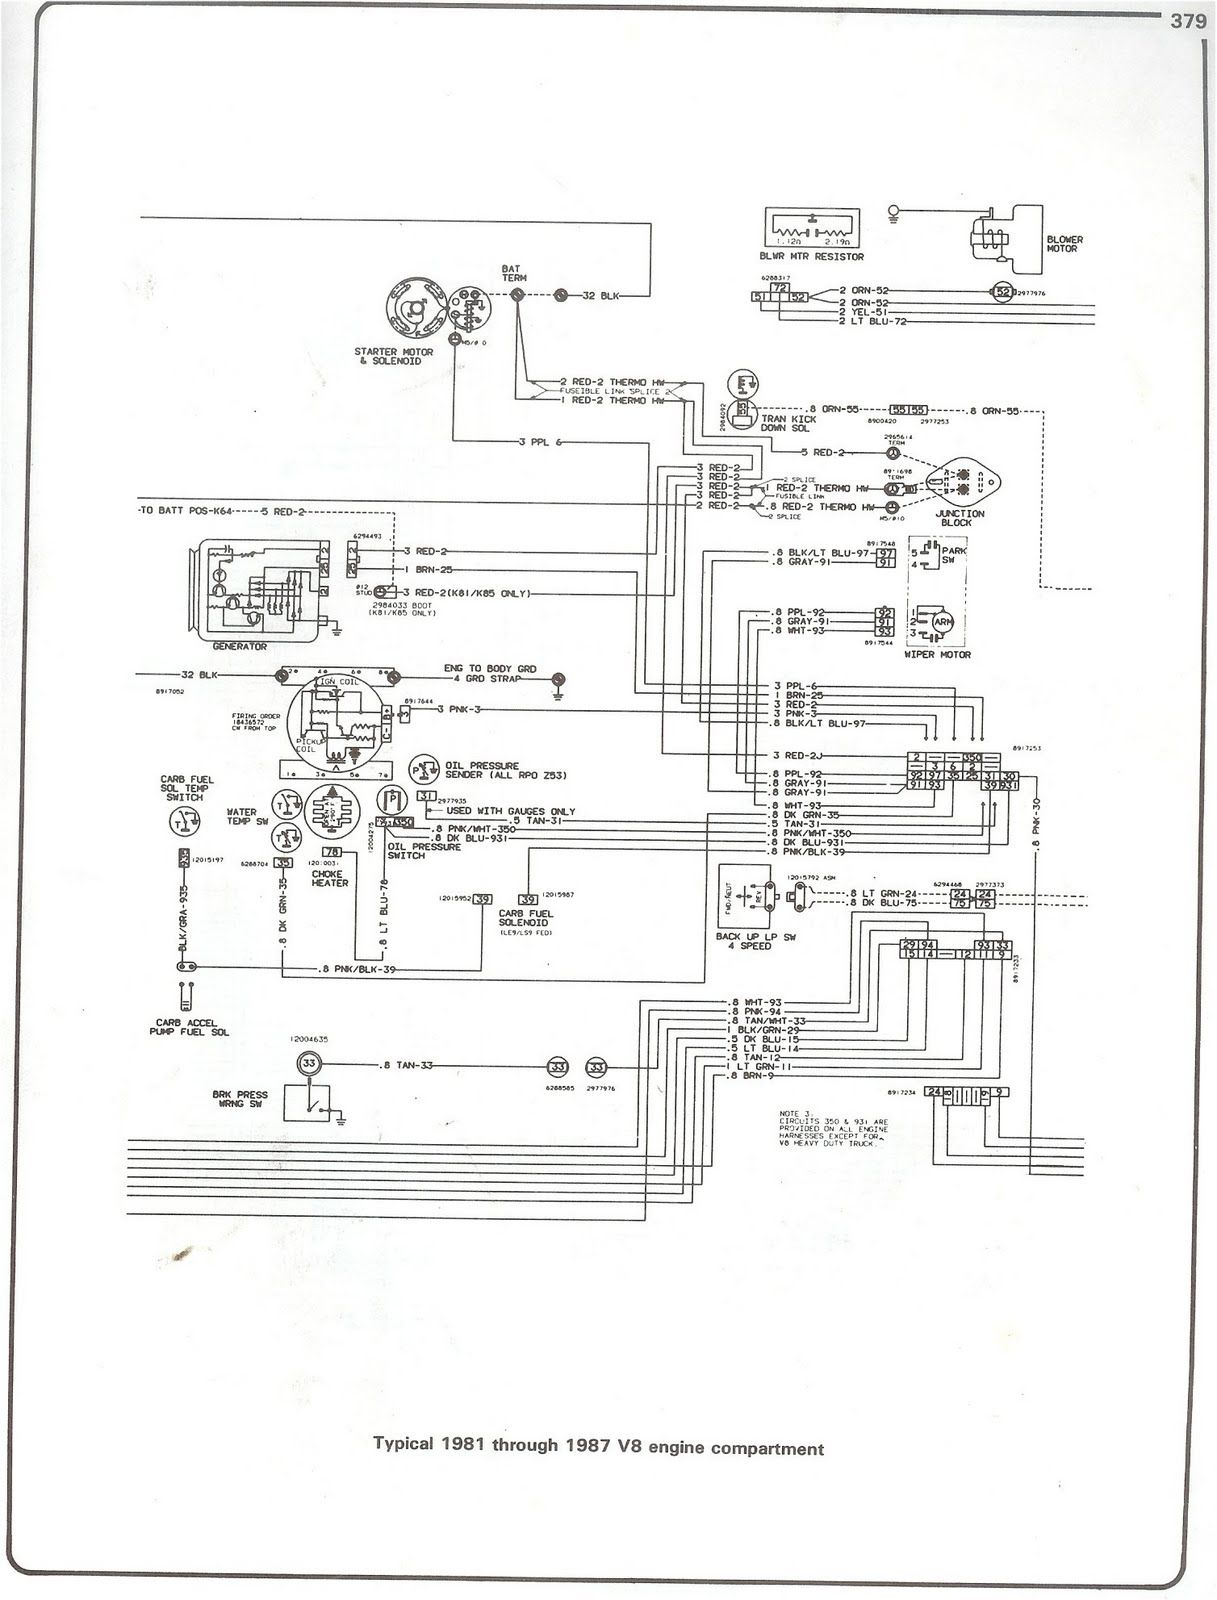 87 chevy wiring diagram schematic this is engine compartment    wiring       diagram    for 1981 trough  this is engine compartment    wiring       diagram    for 1981 trough